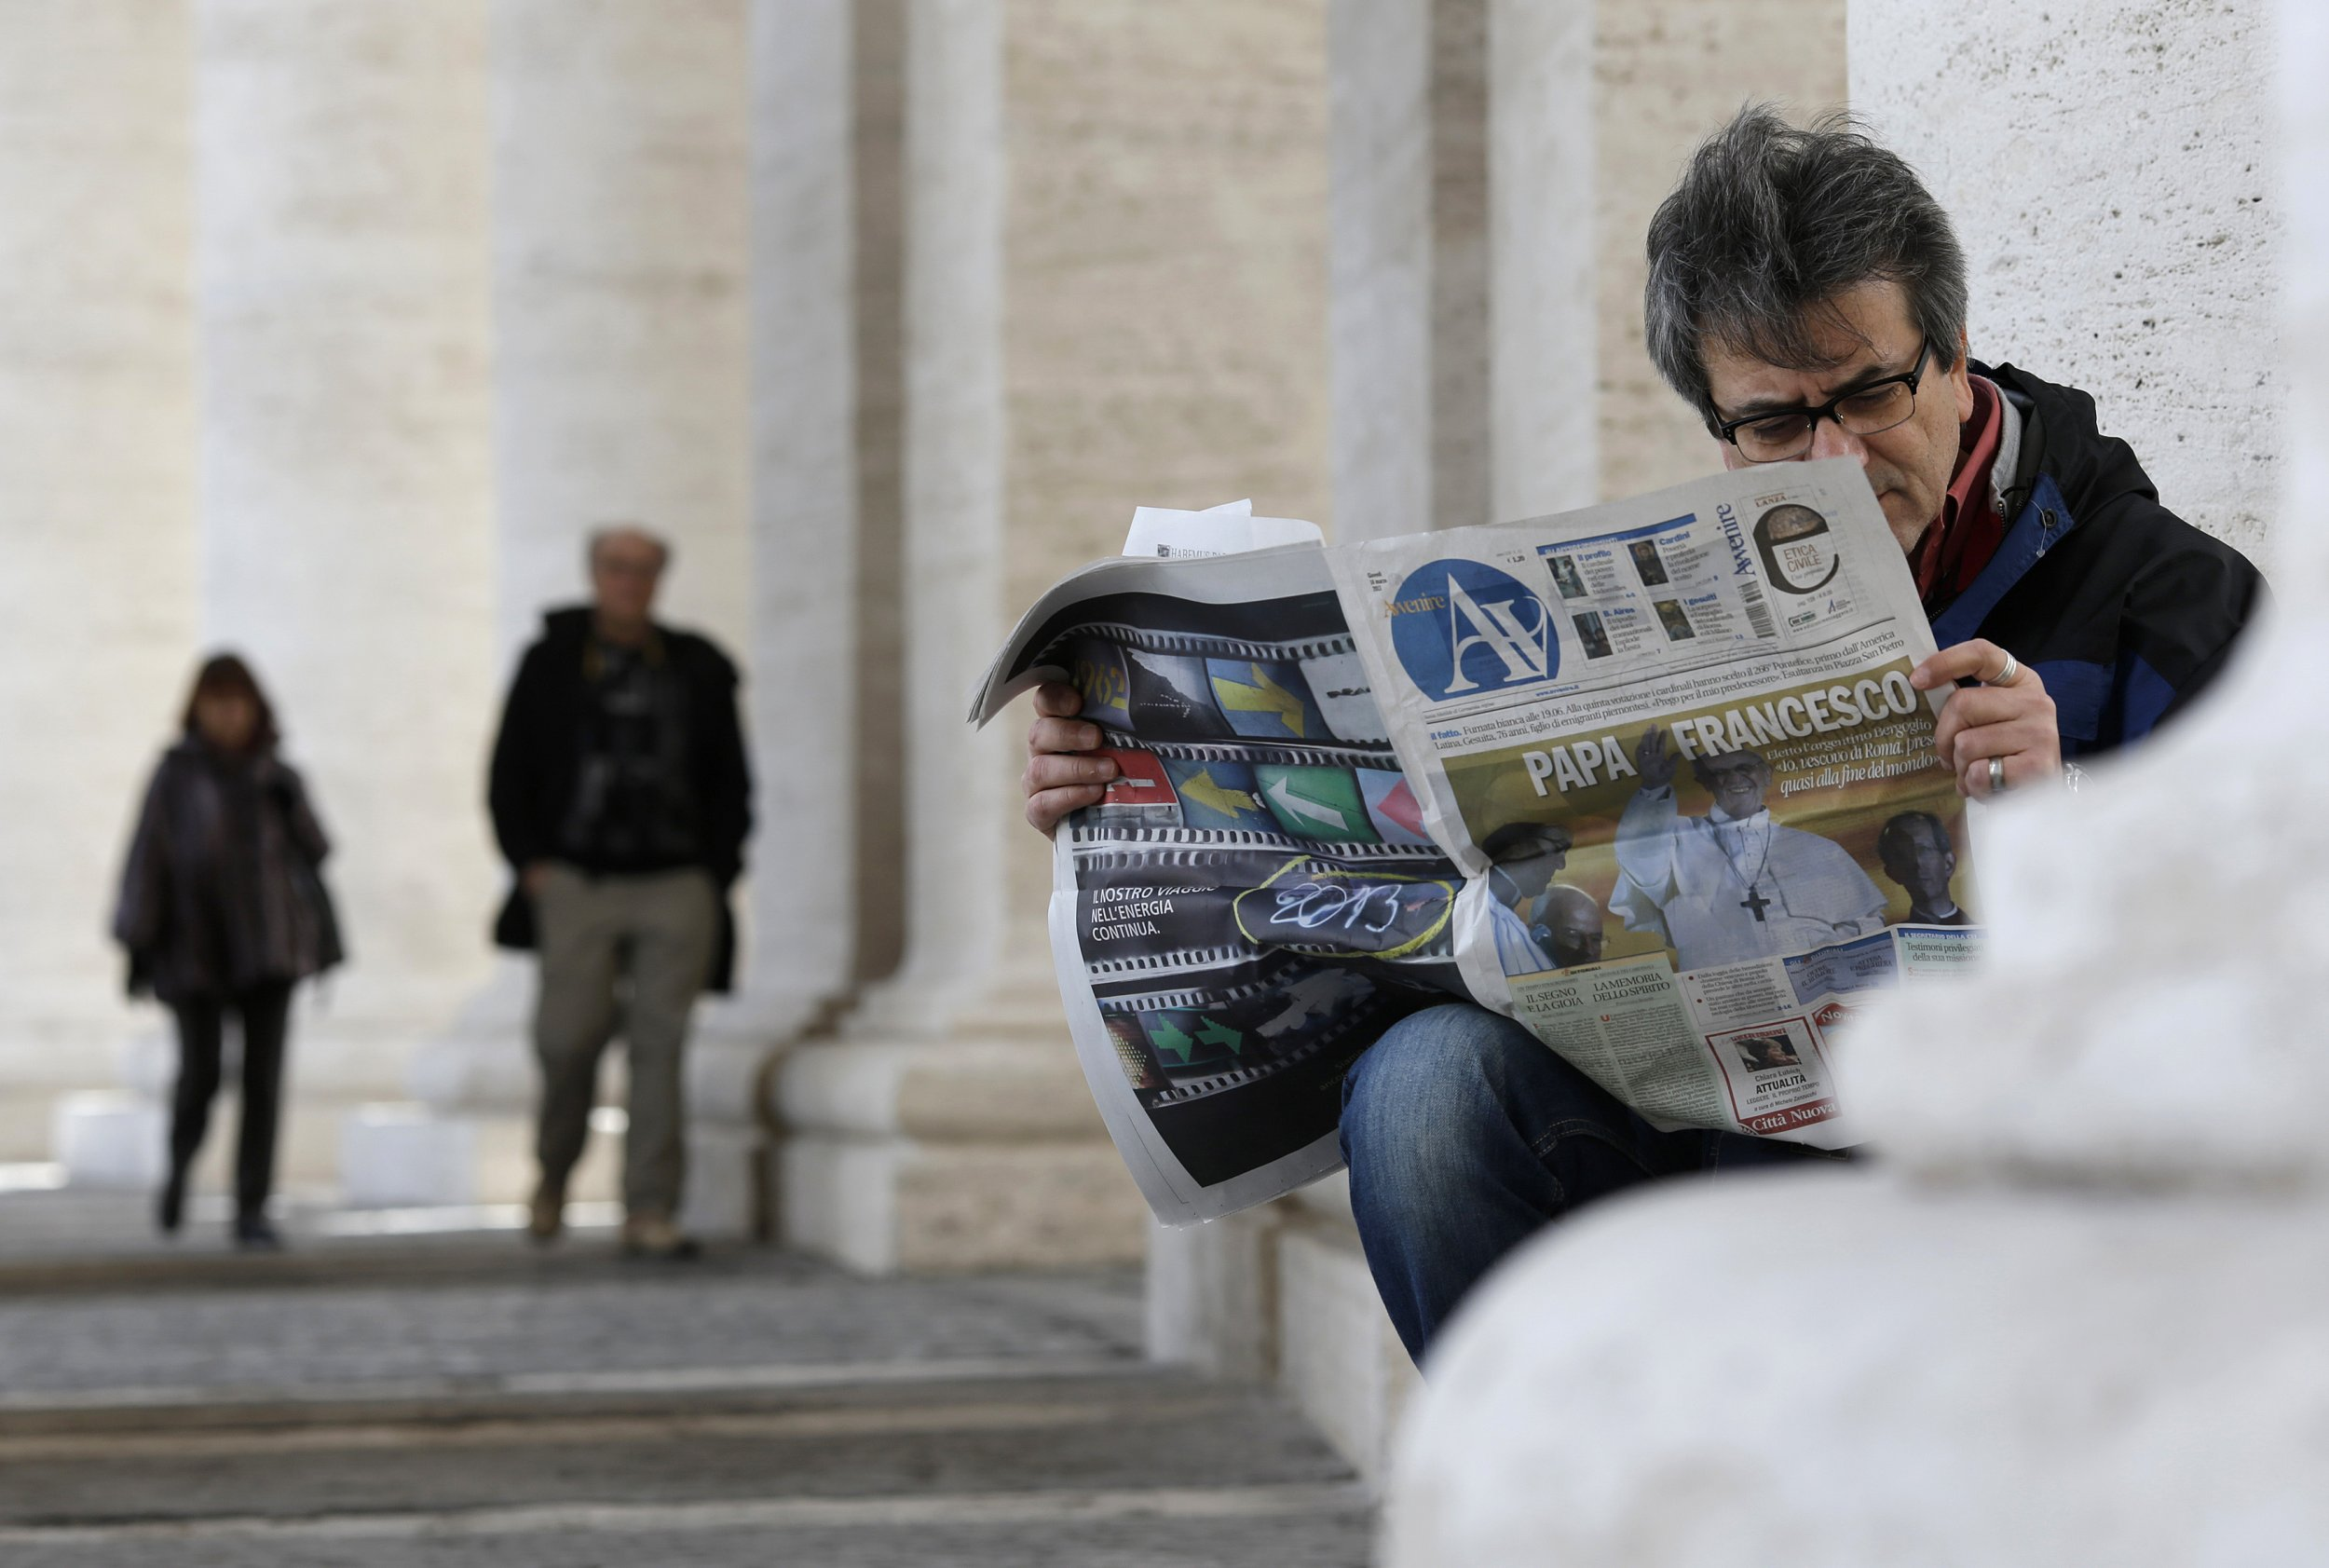 9/9 Pope Francis Media Coverage